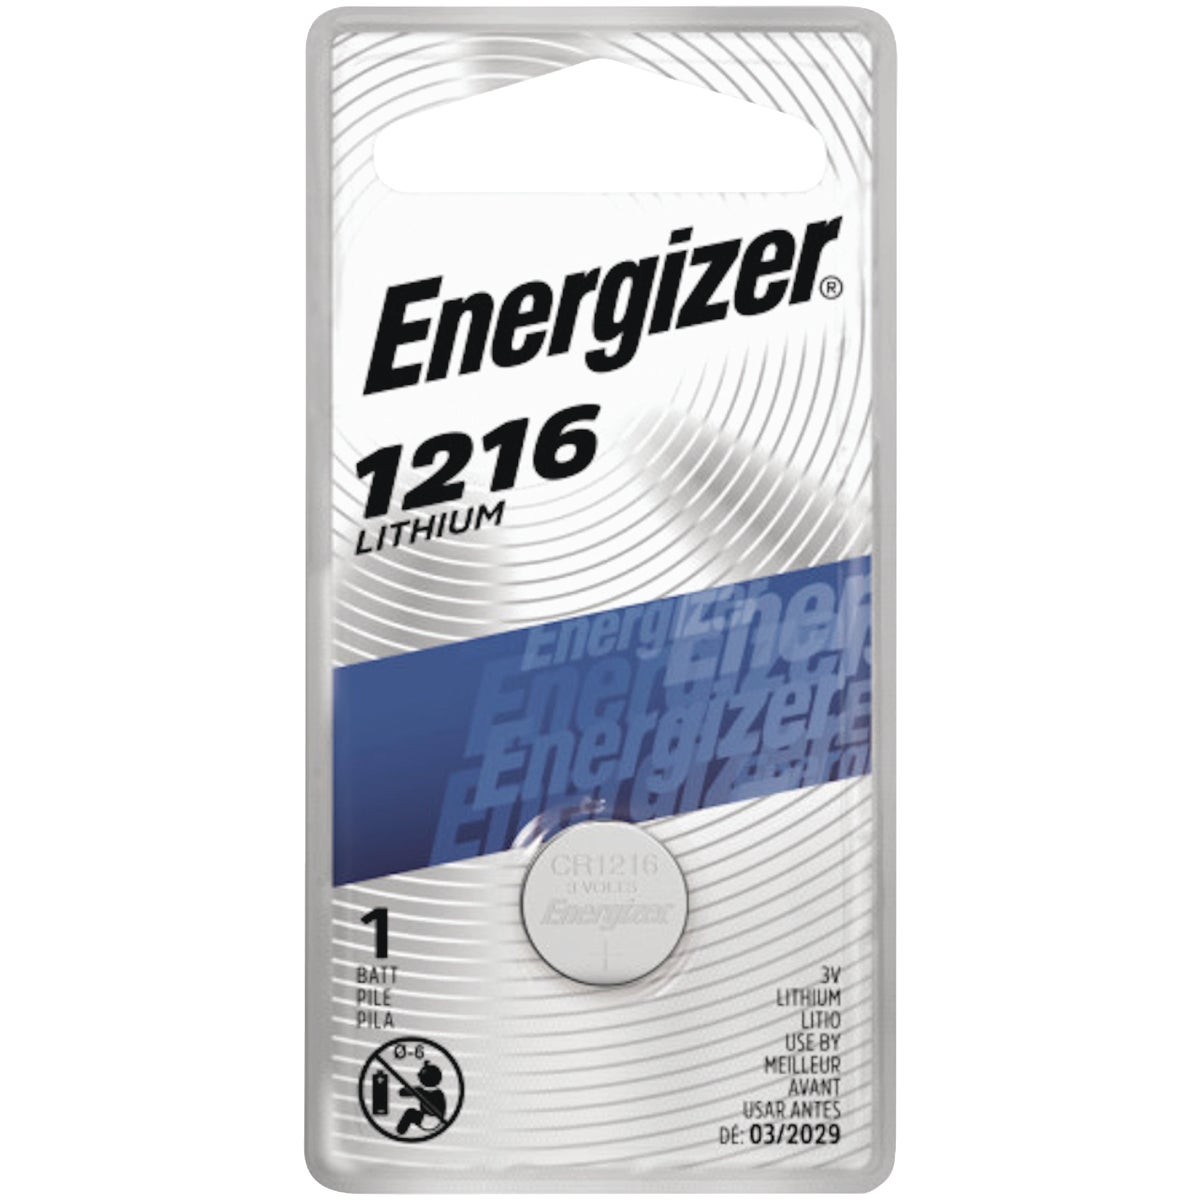 3V LITHIUM BATTERY - ECR1216BP by Energizer